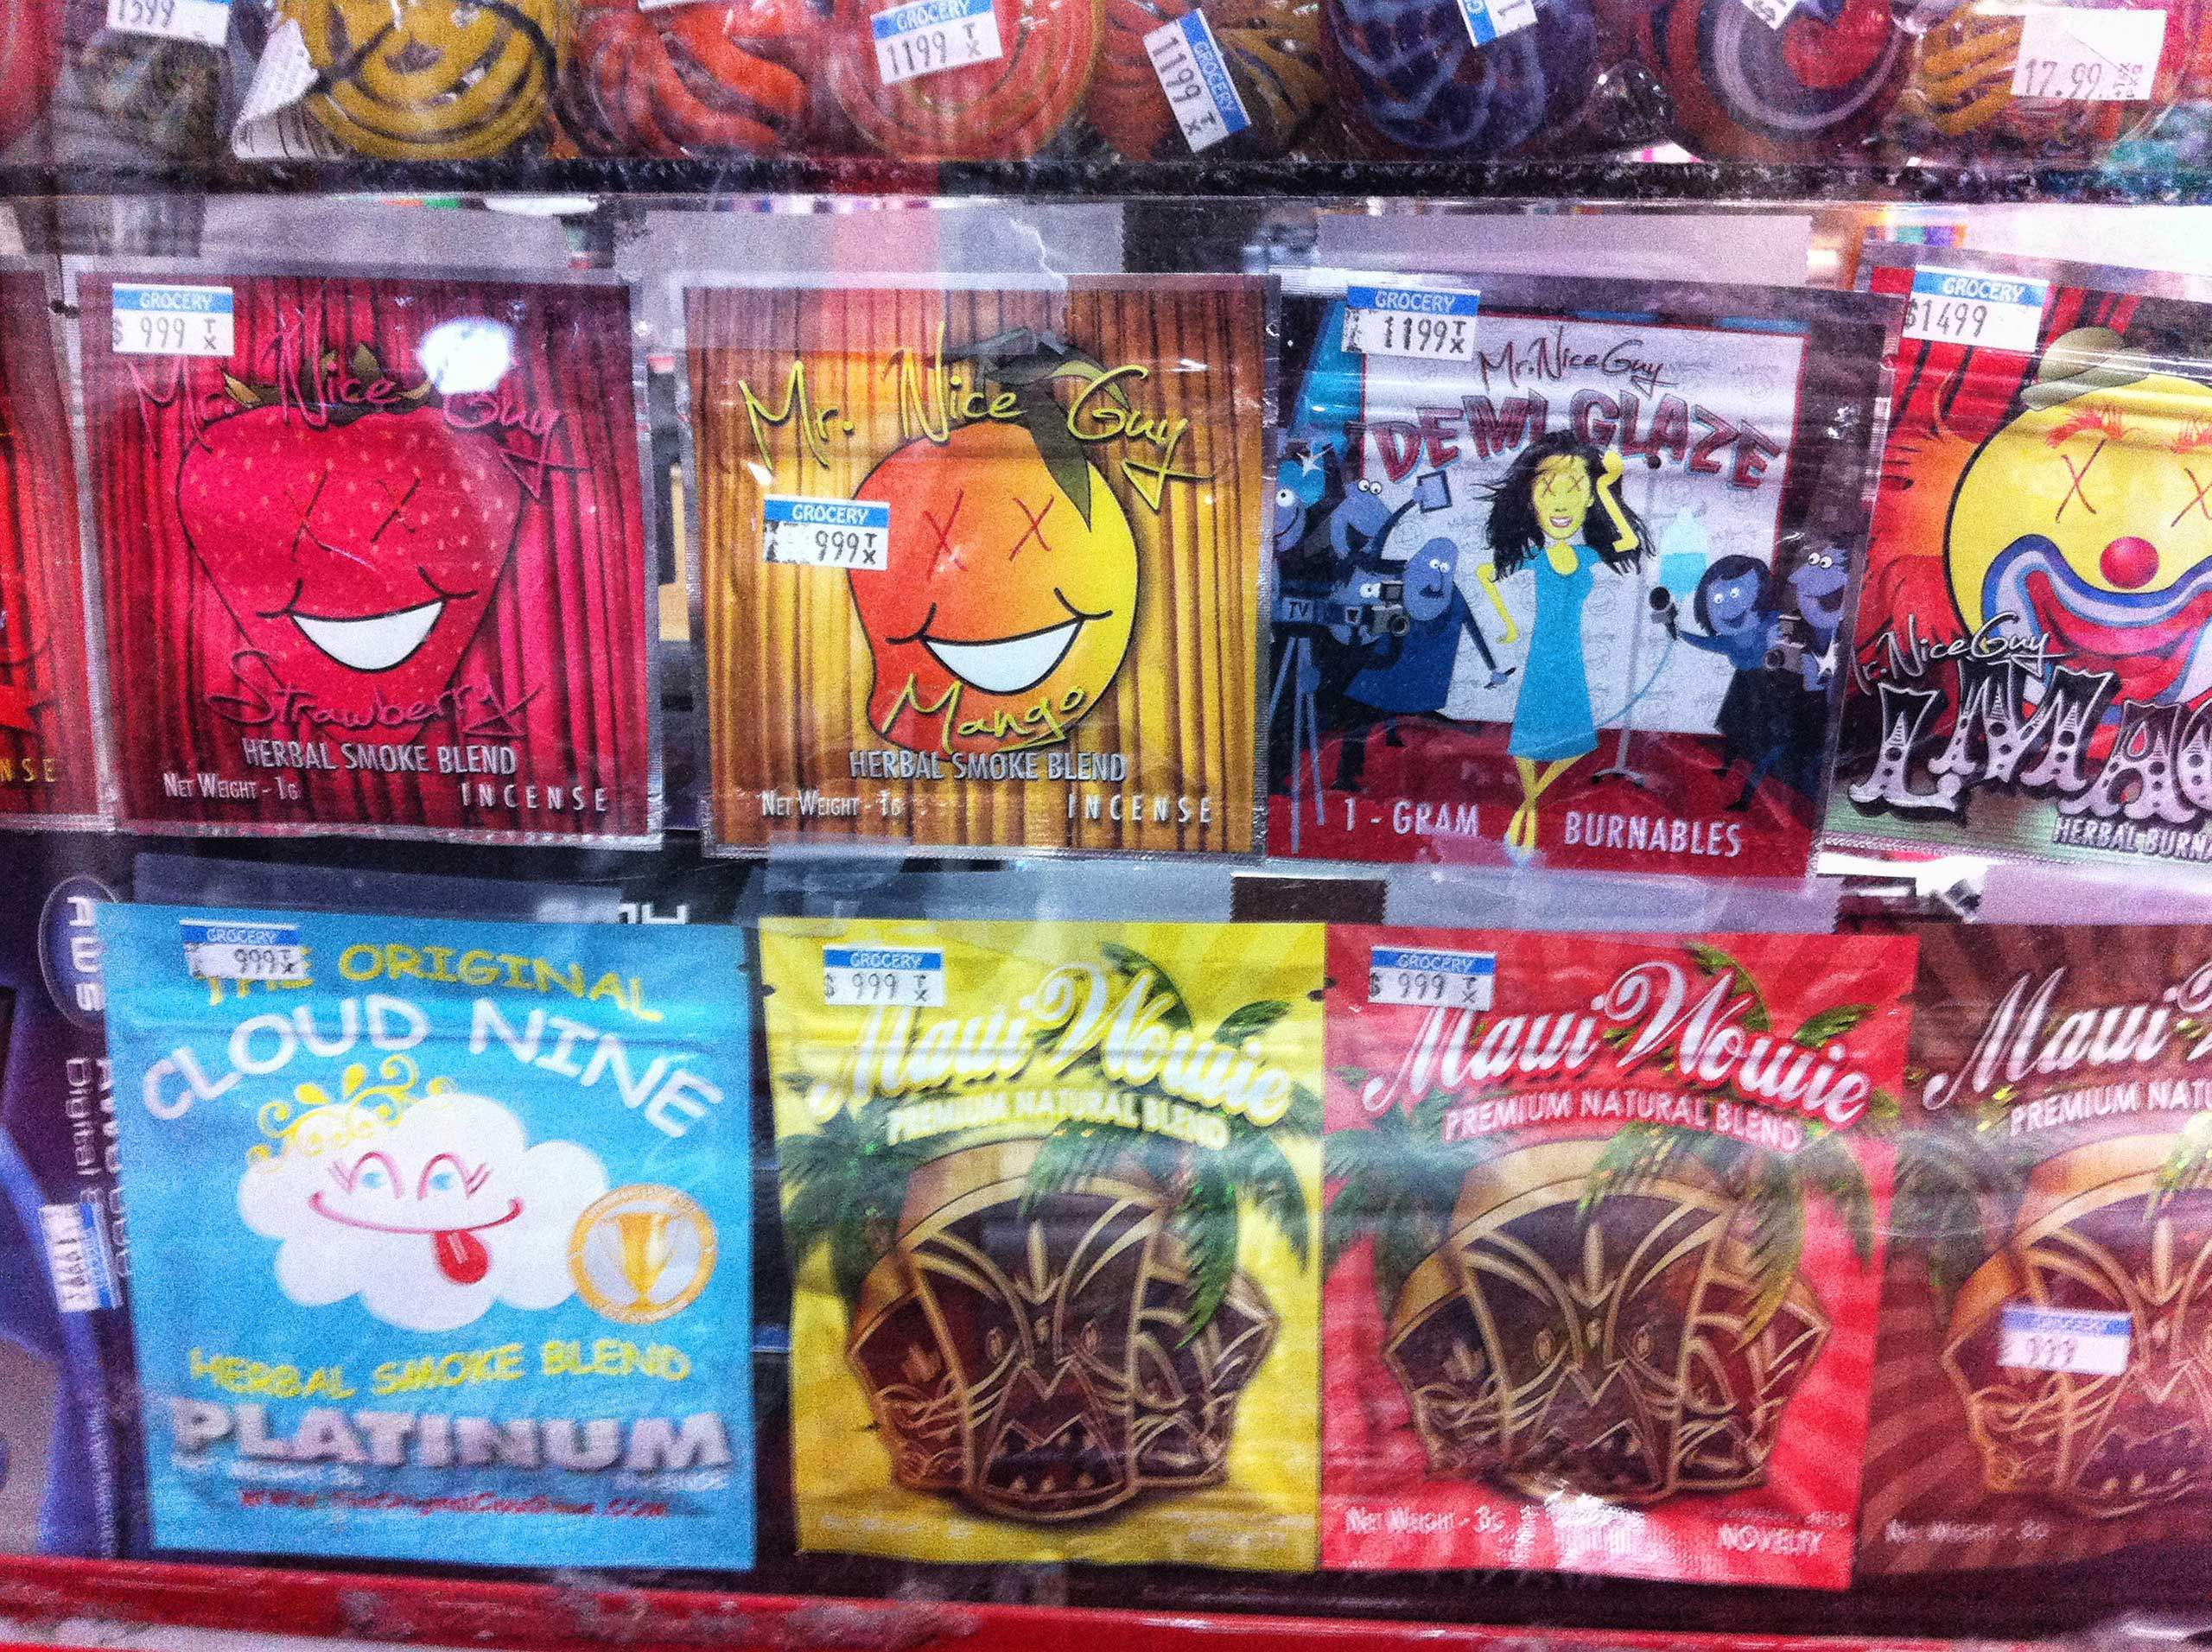 Synthetic marijuana, sold in colorful packages with names like Cloud Nine, Maui Wowie and Mr. Nice Guy, sits behind the glass counter at a Kwik Stop.